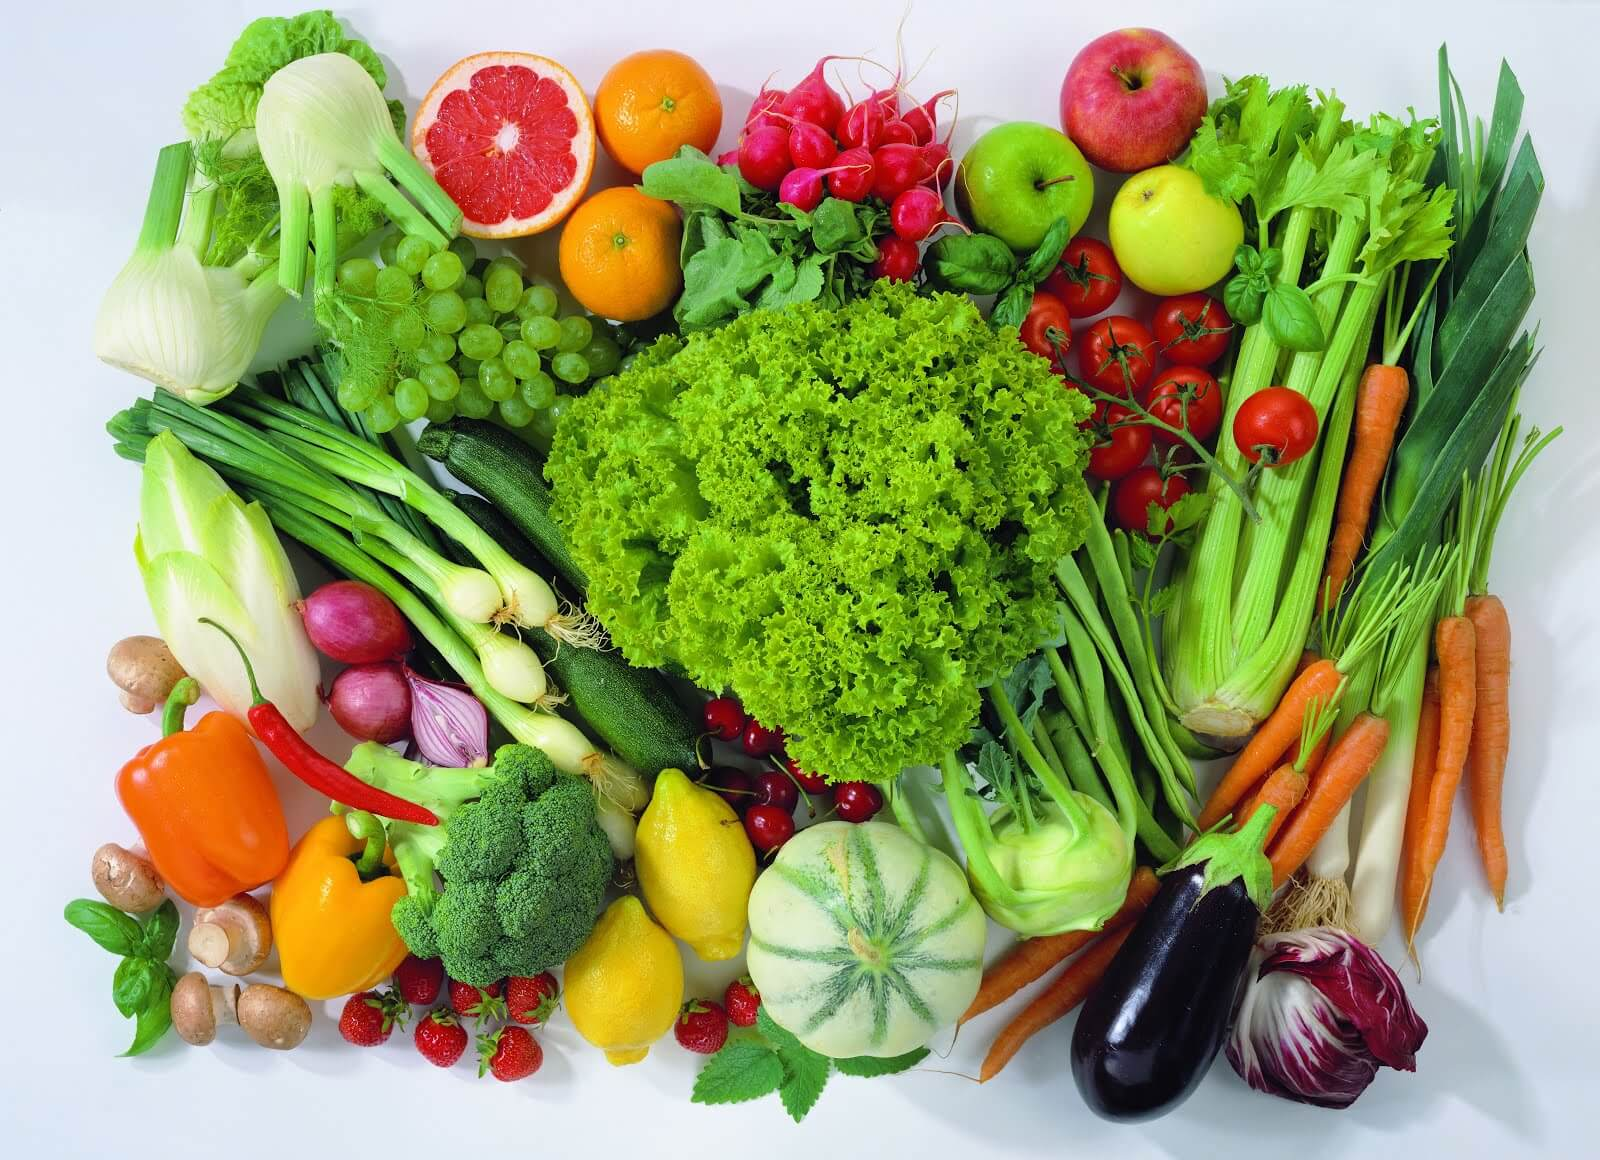 A selection of colorful vegetables.